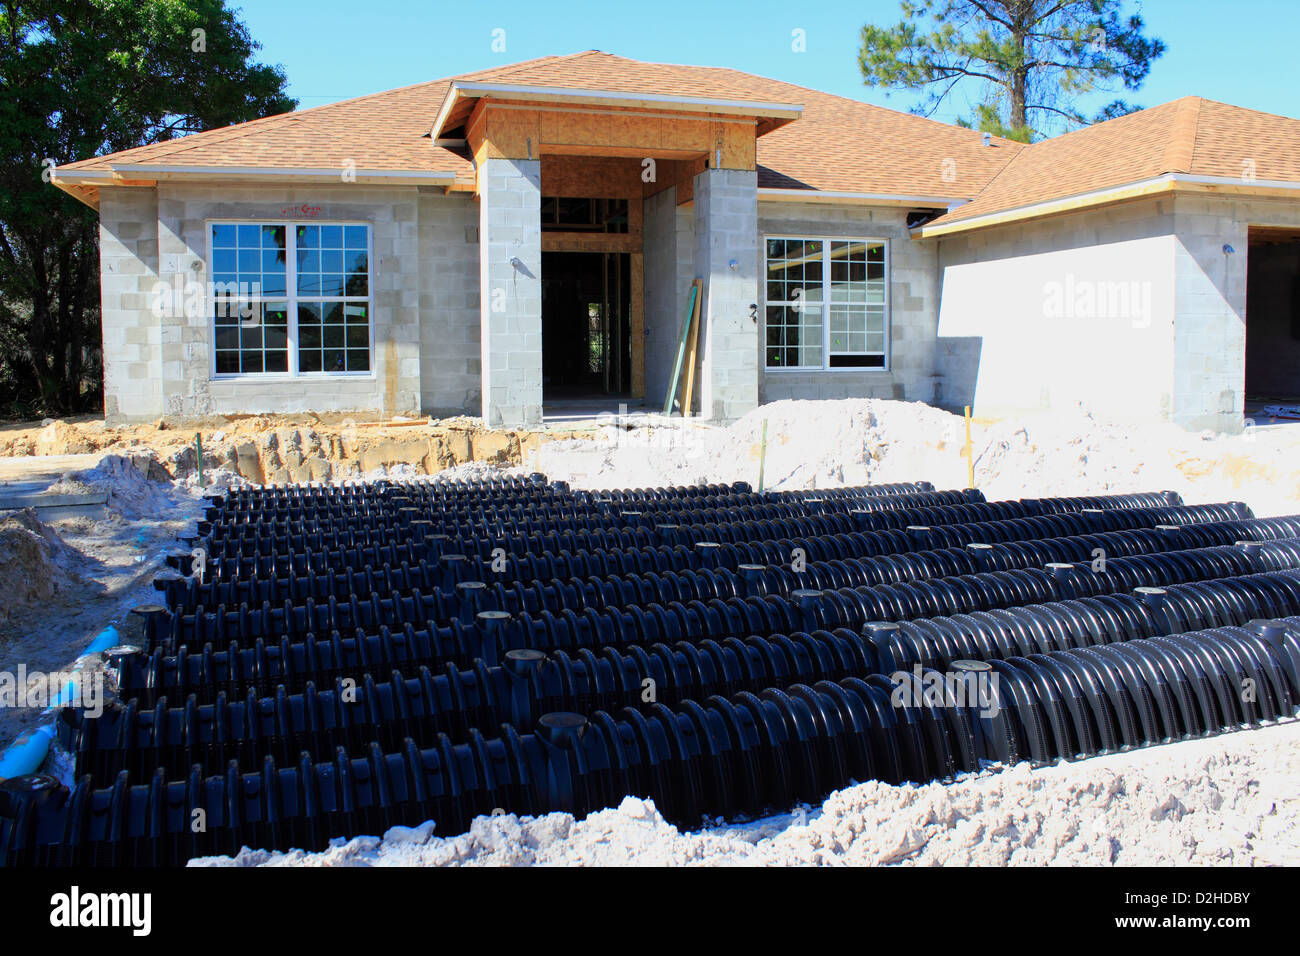 Septic tank for private homes 15